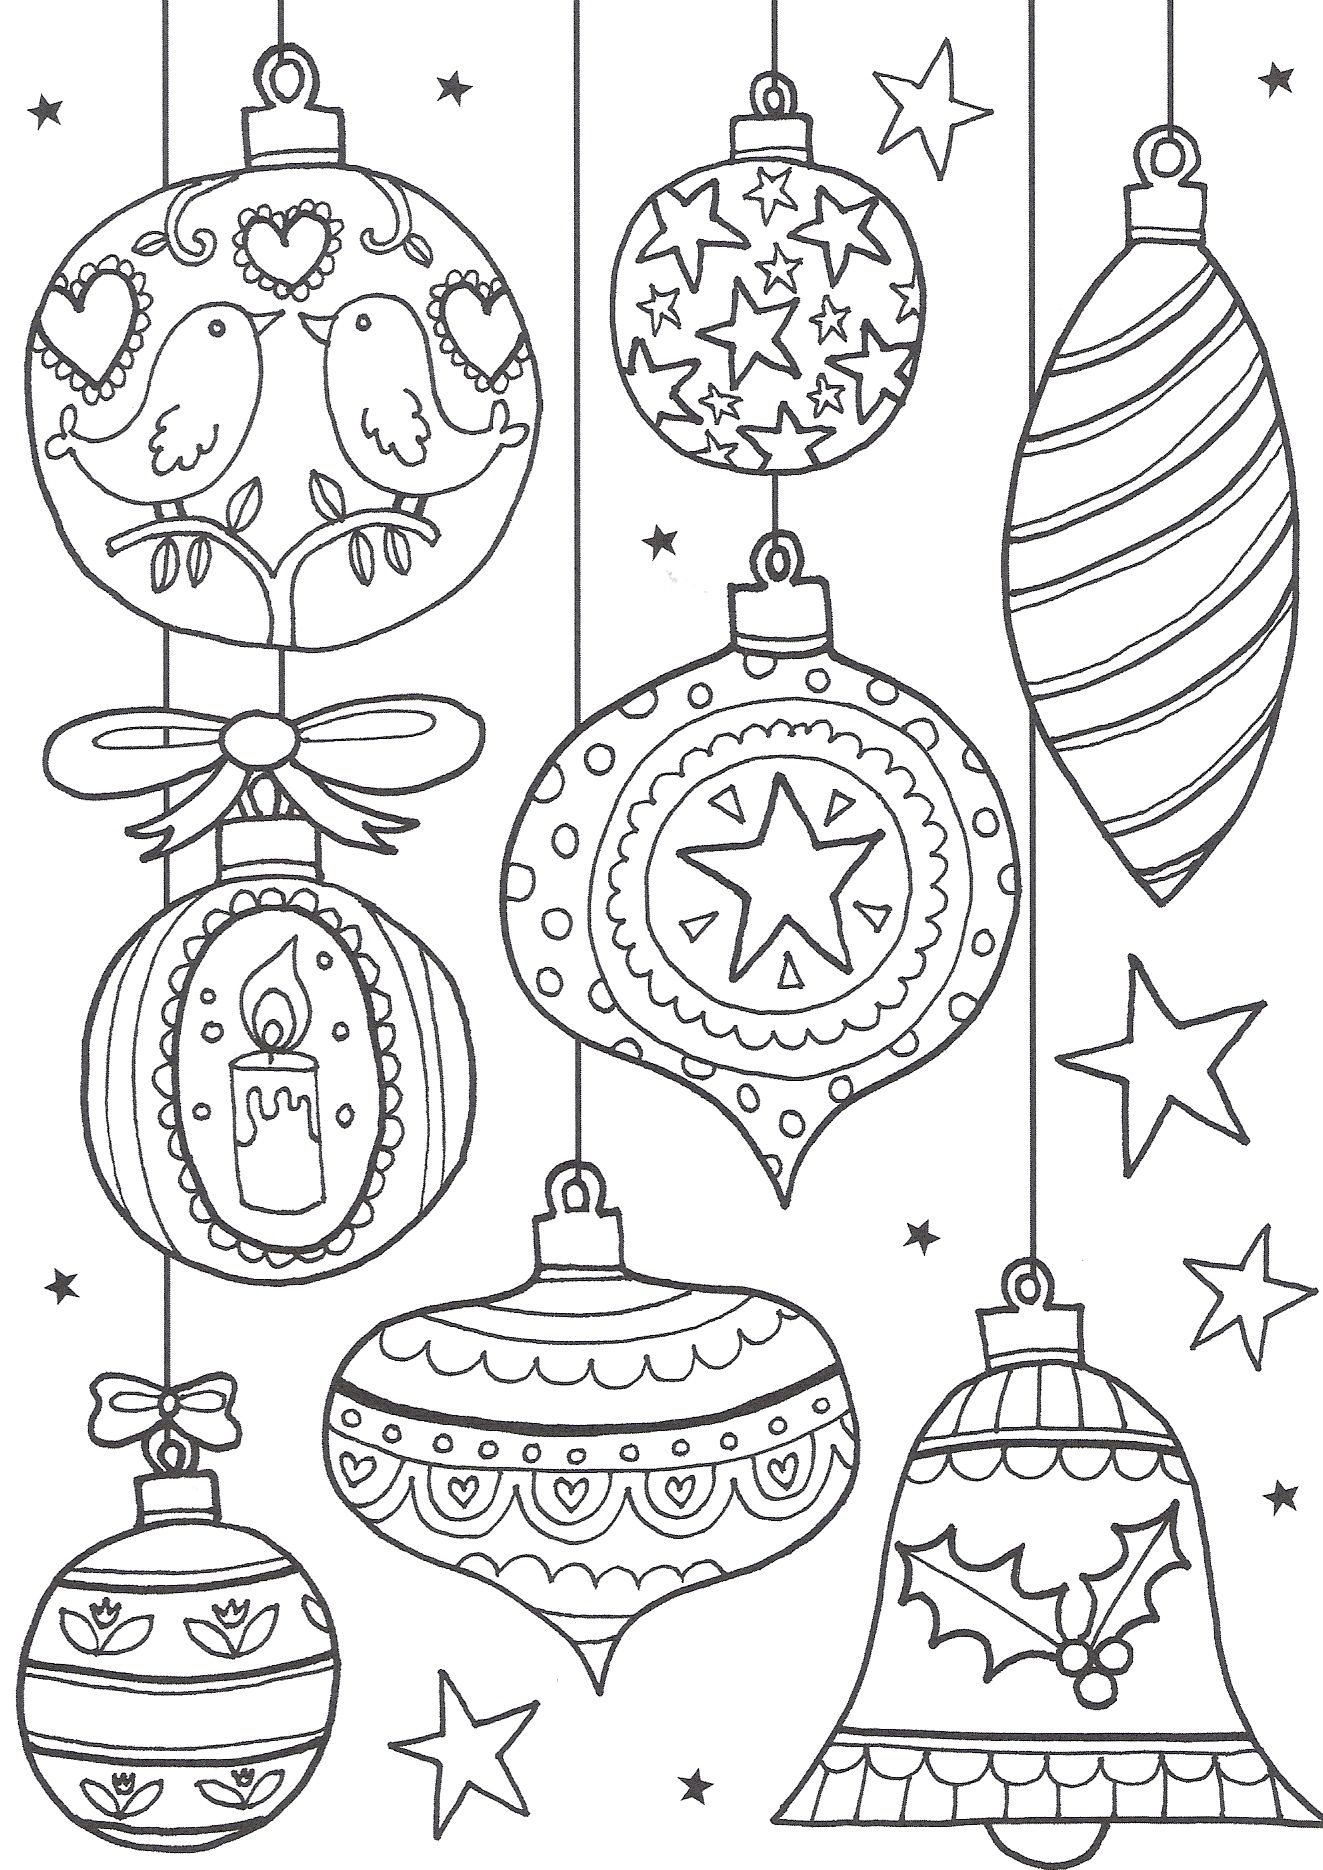 Christmas Coloring Pages For Adults To Print With Free Colouring The Ultimate Roundup